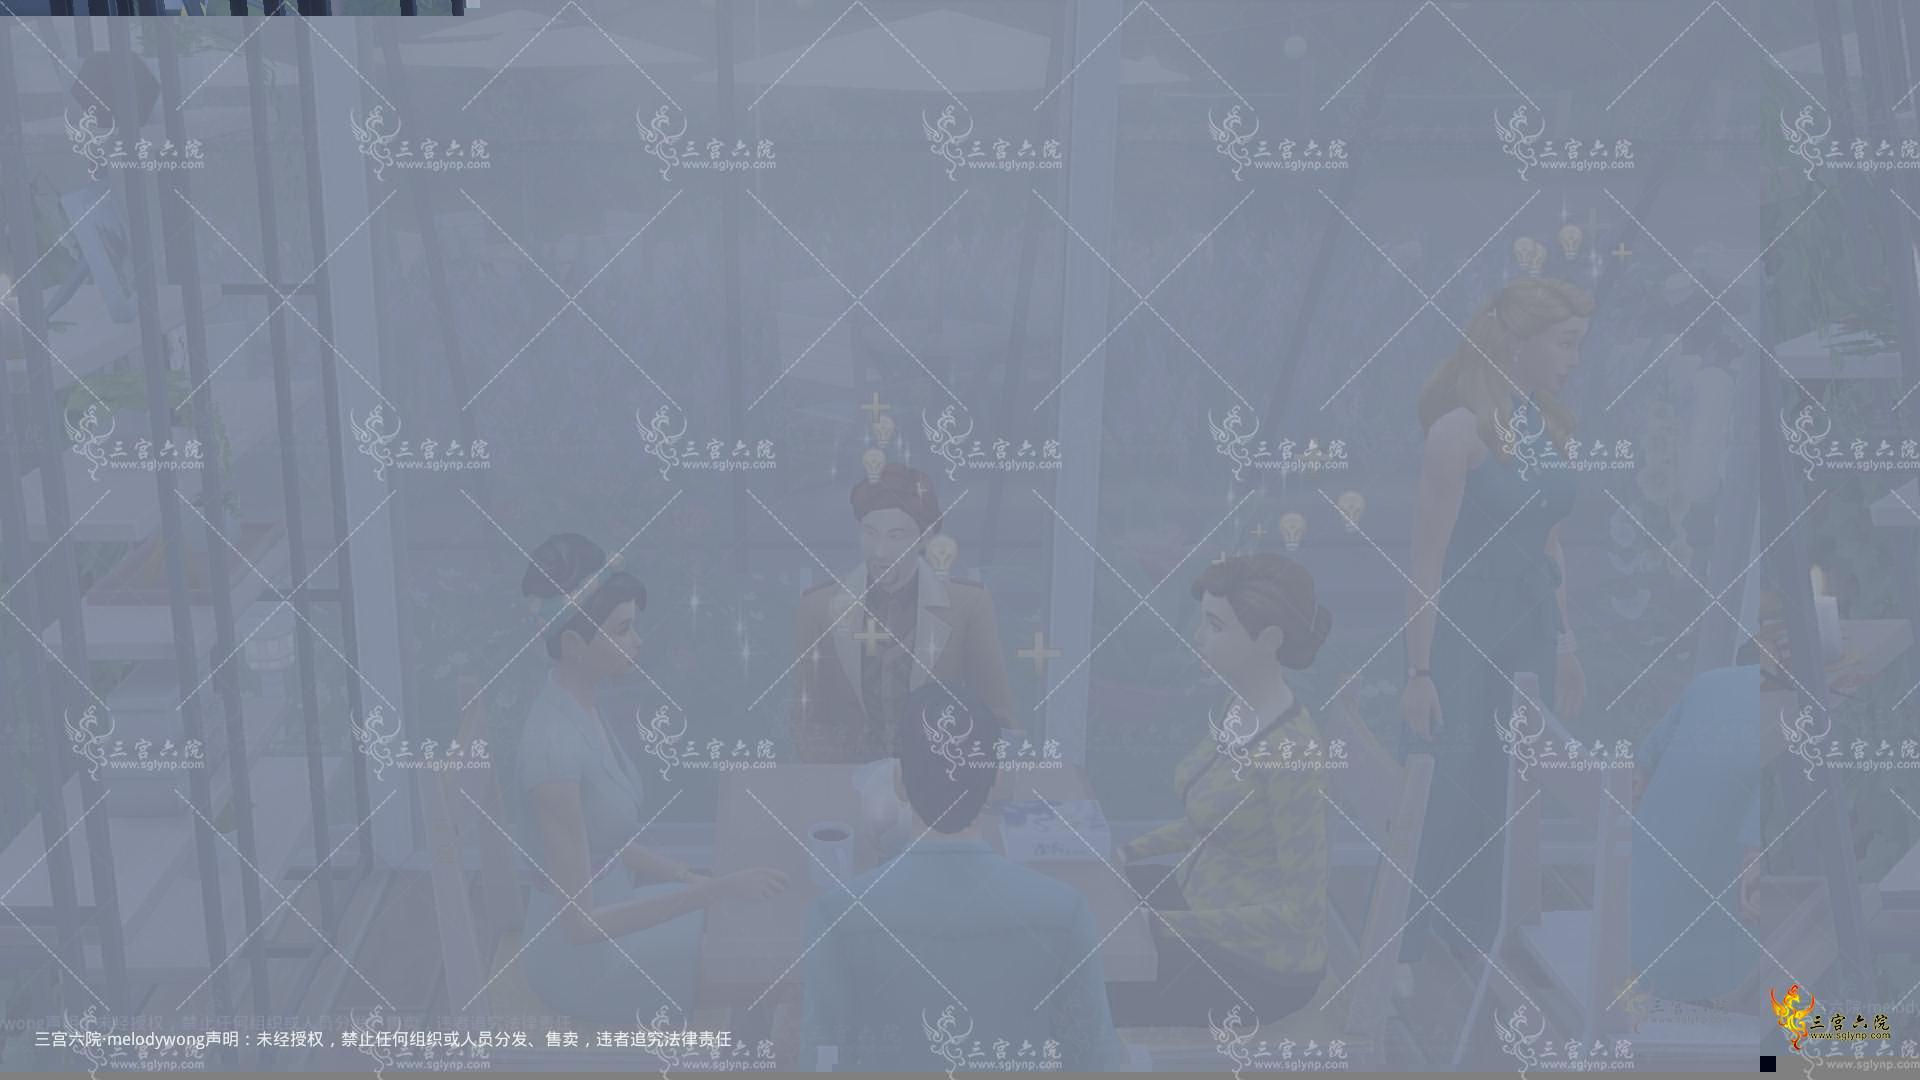 The Sims 4 2021_8_26 下午 09_59_46.png